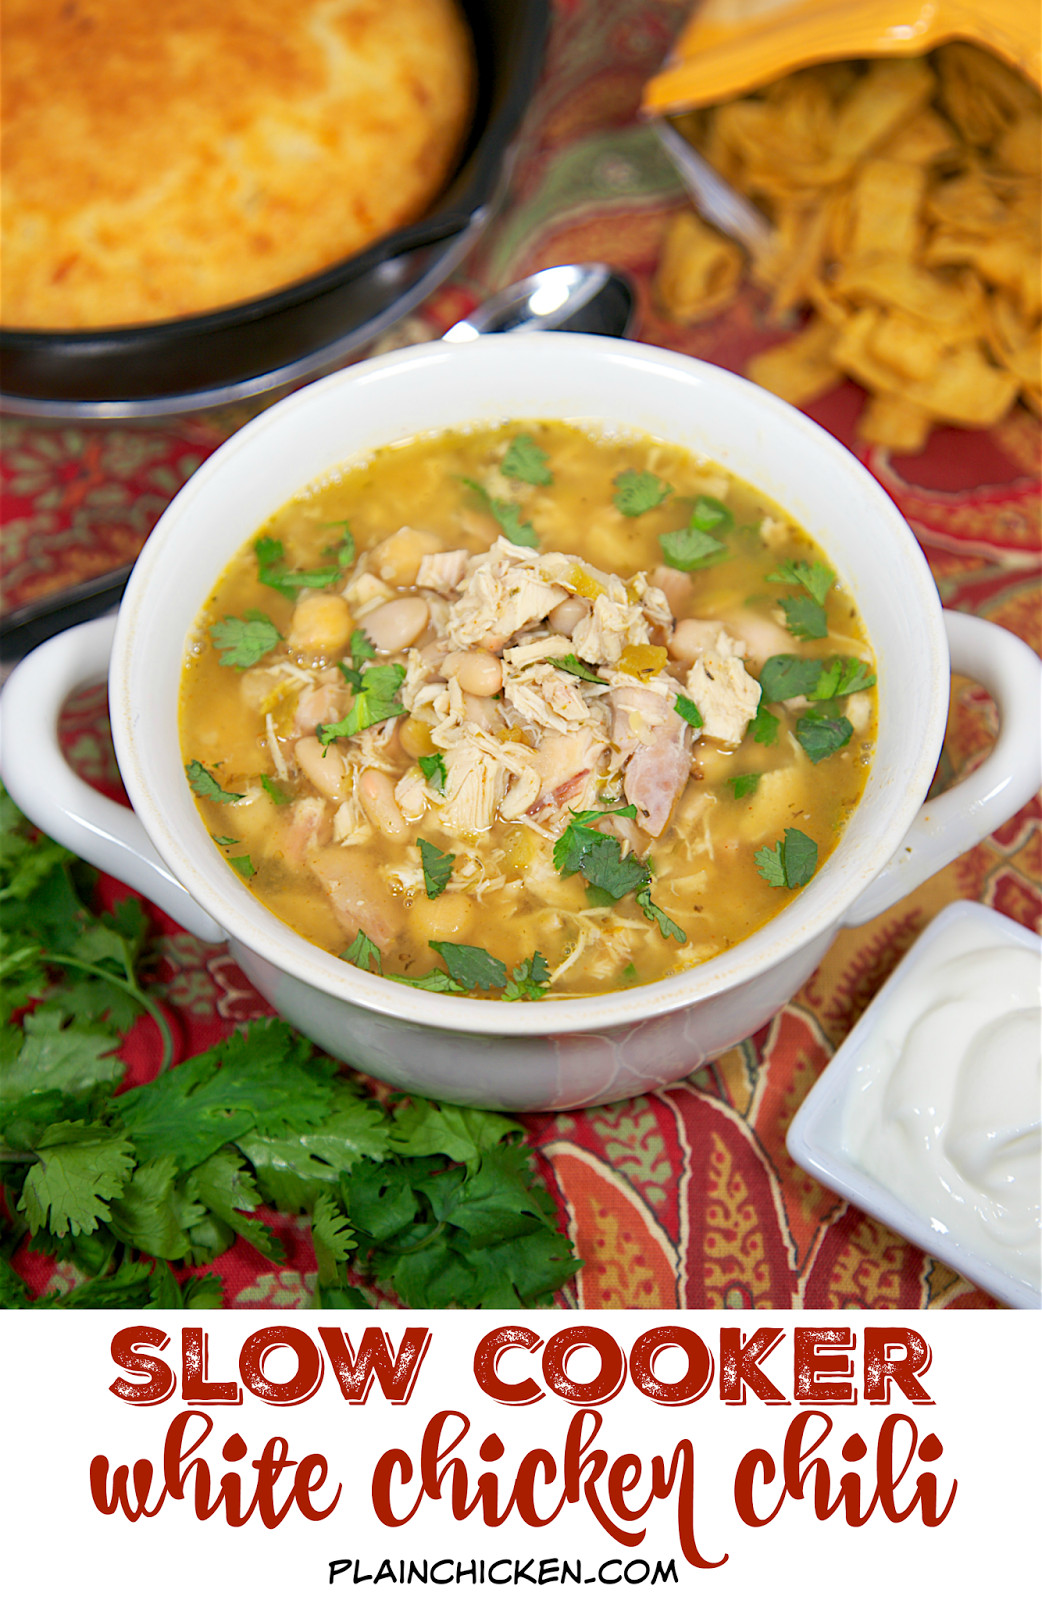 Slow Cooker White Chicken Chili  Slow Cooker White Chicken Chili Plain Chicken